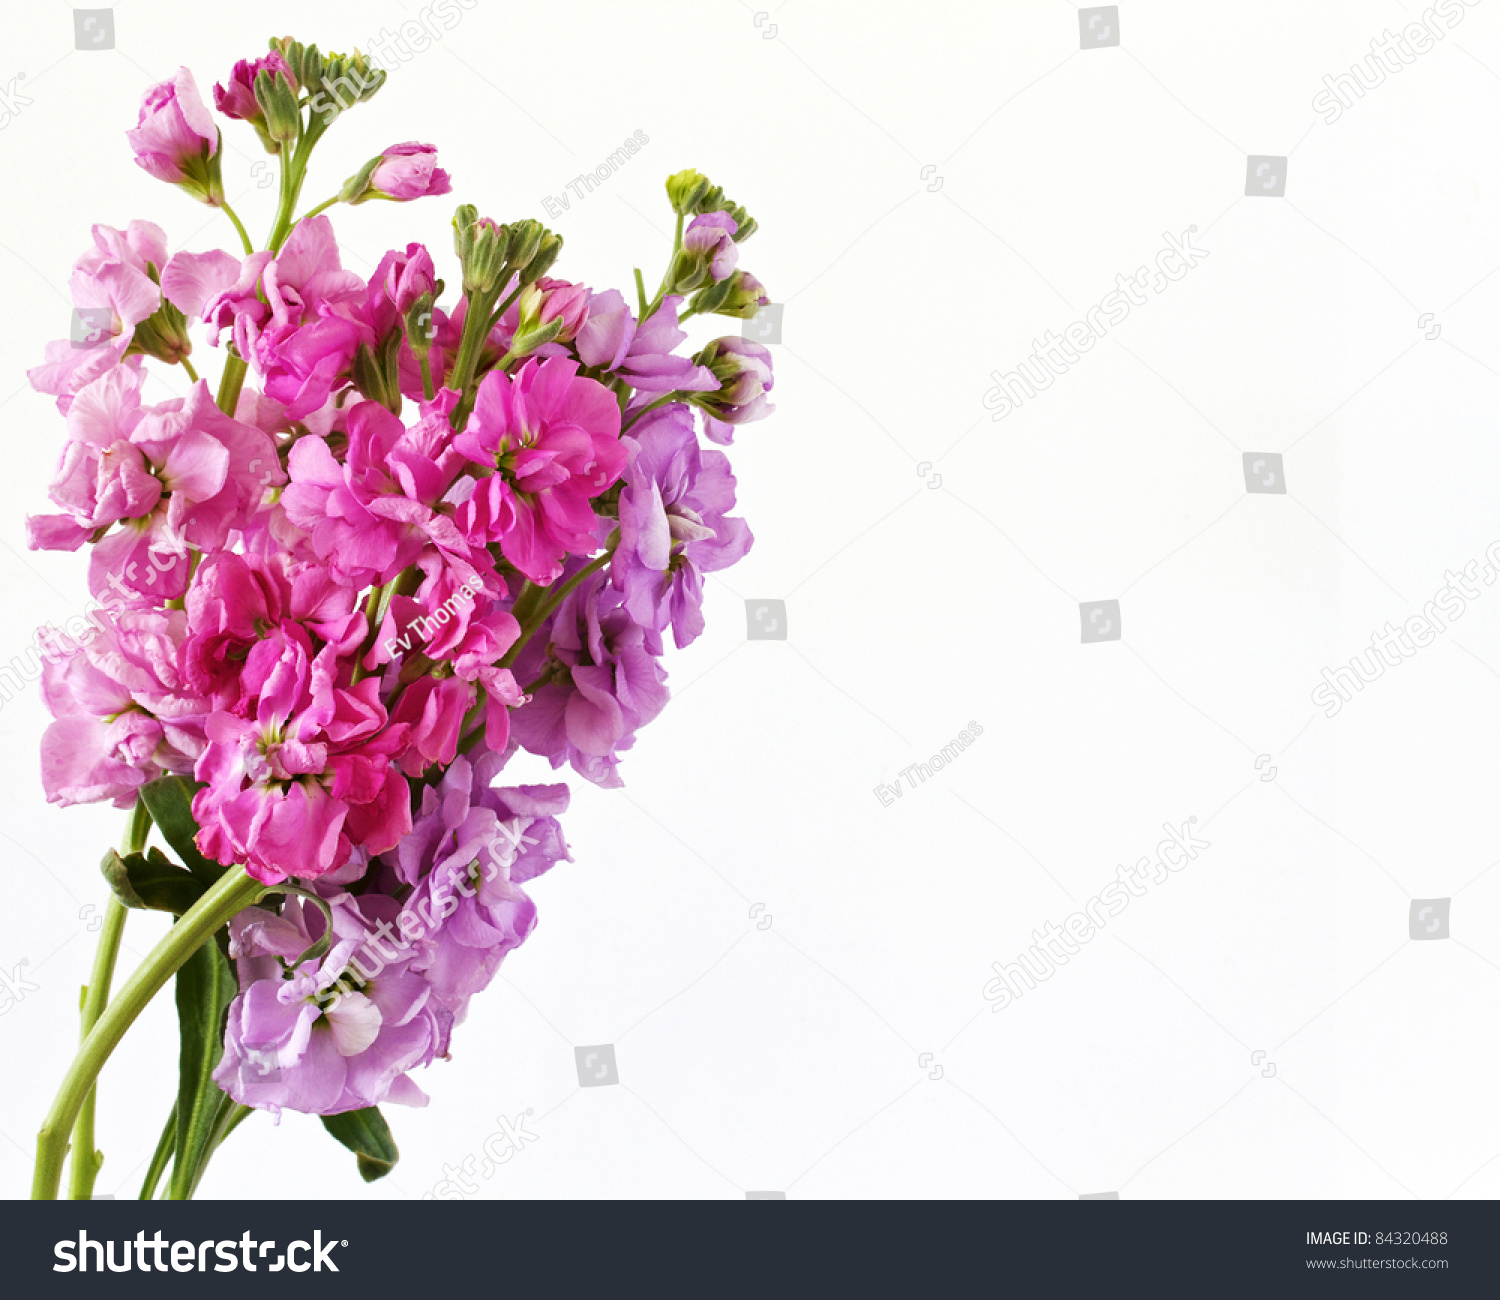 Brightly Colored Flowers Isolated On A White Background With Space